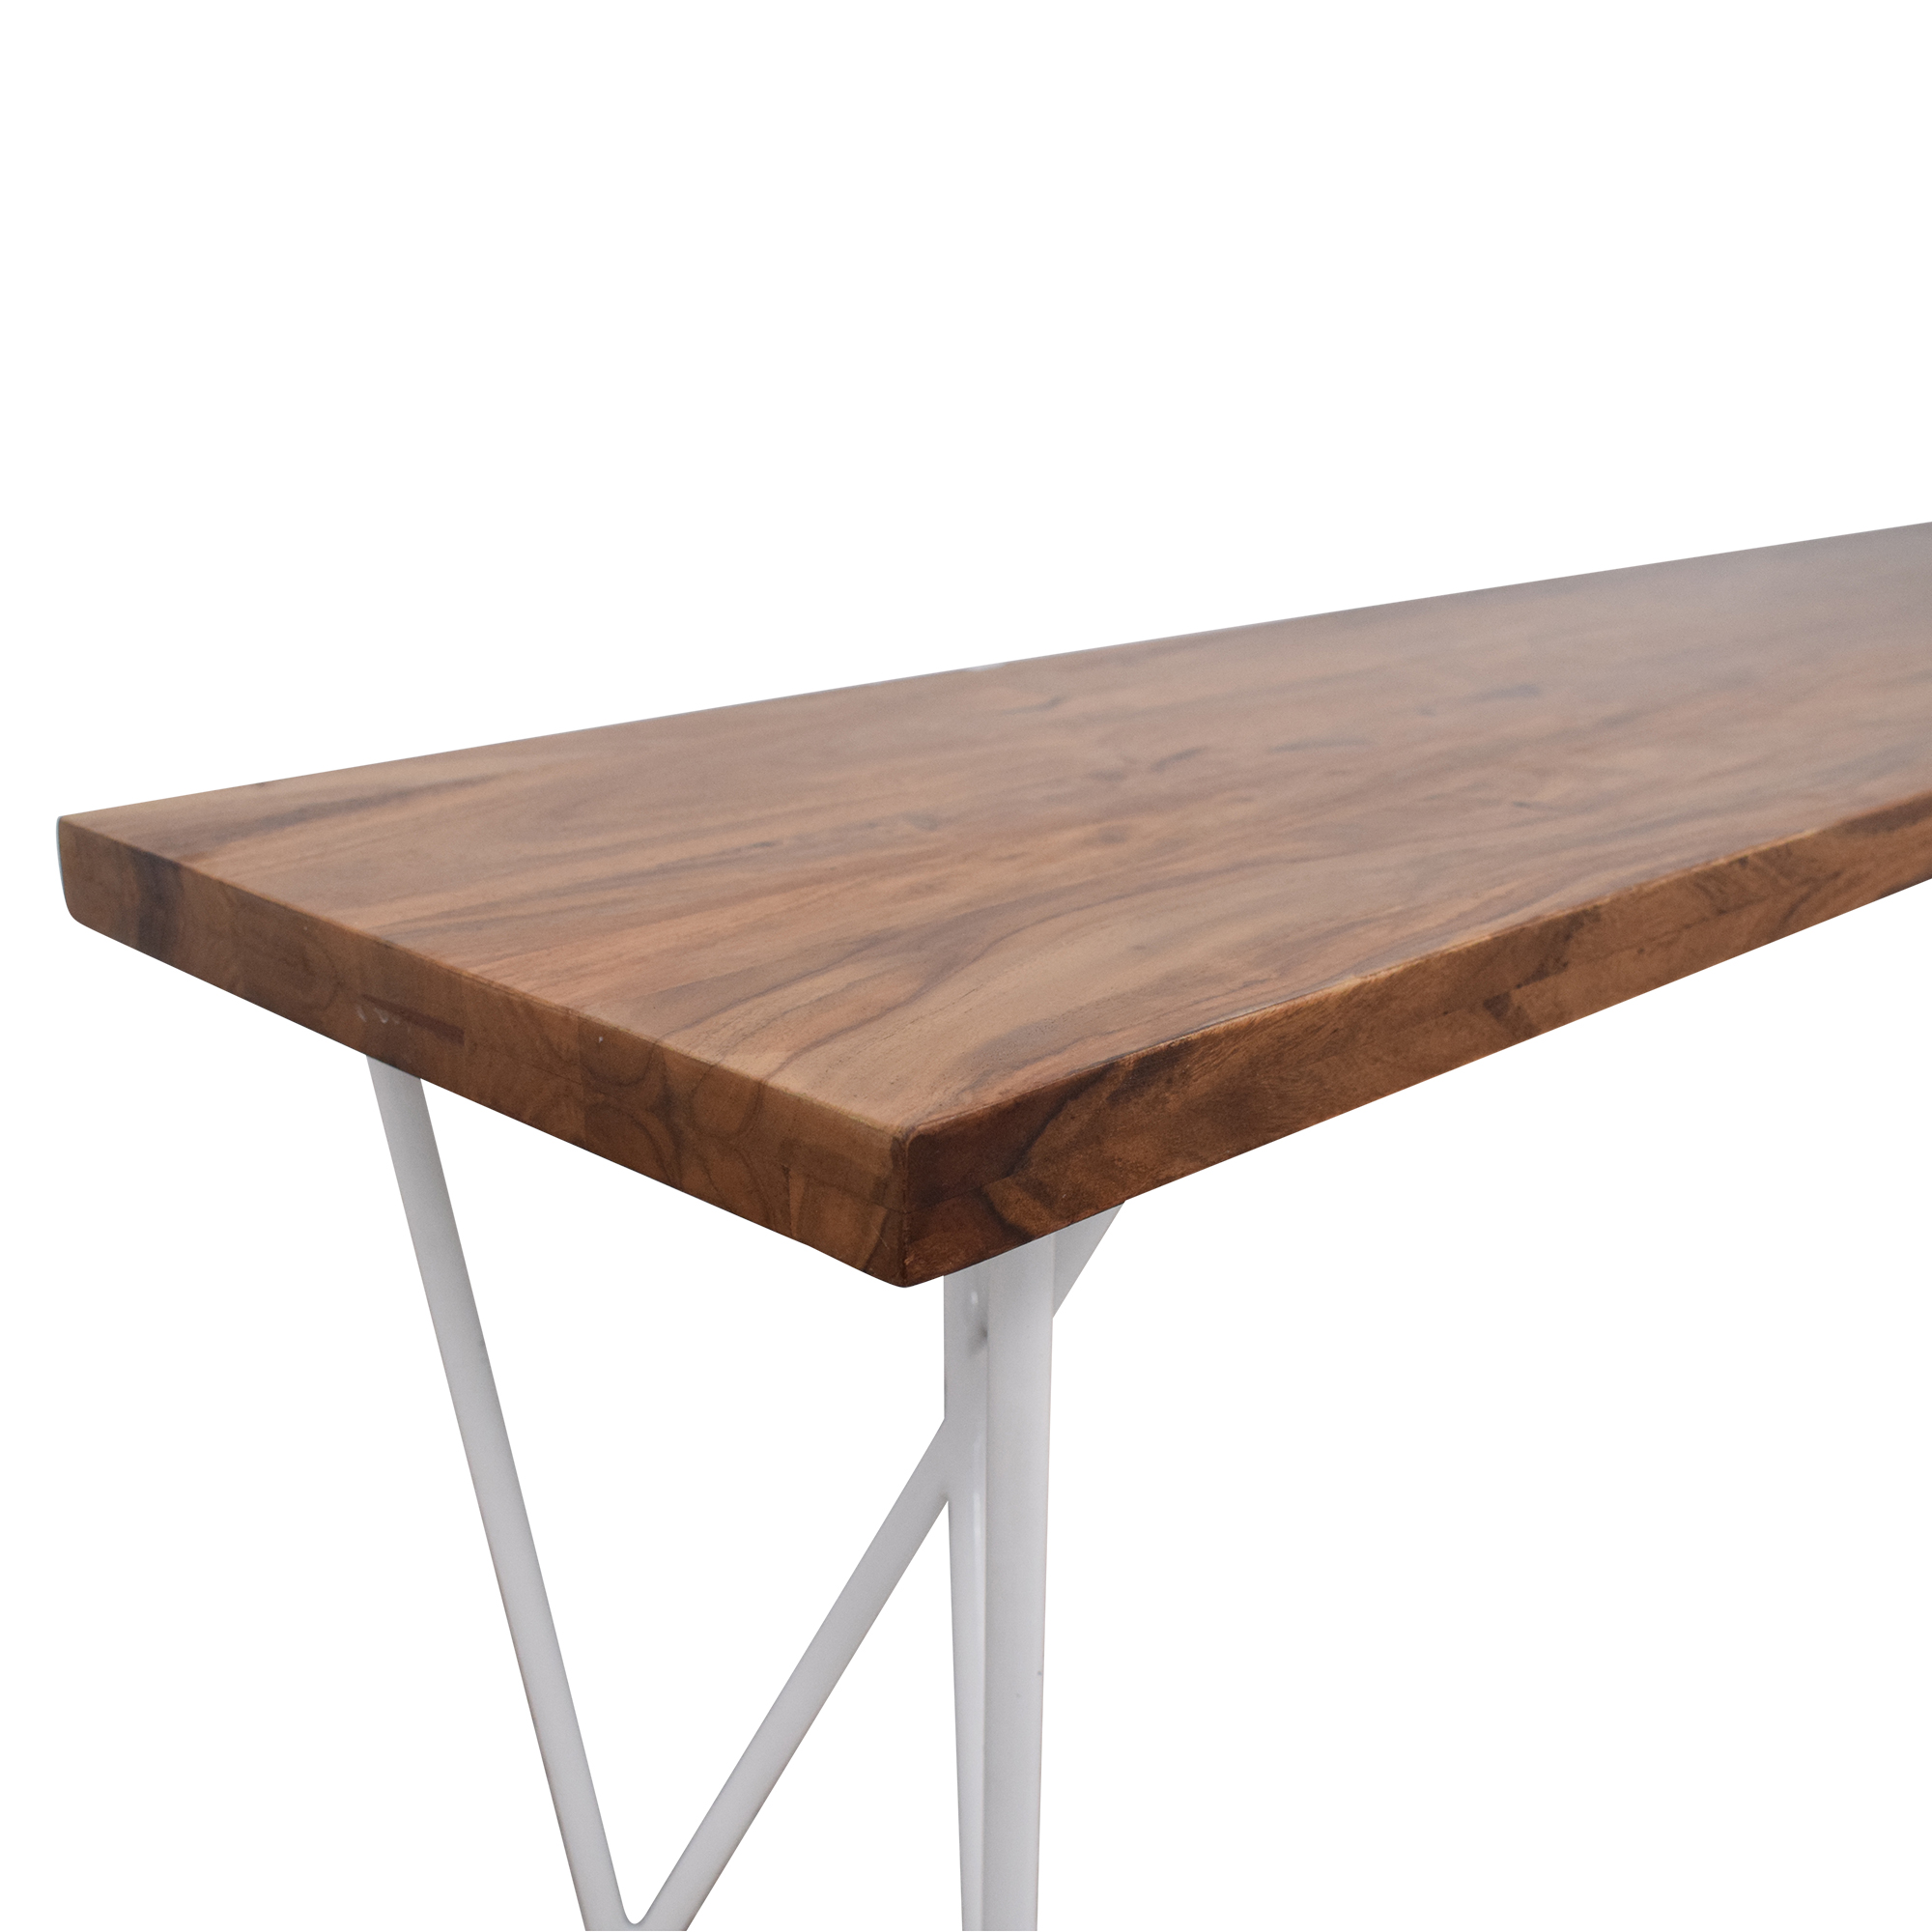 CB2 CB2 Wood Bench for sale